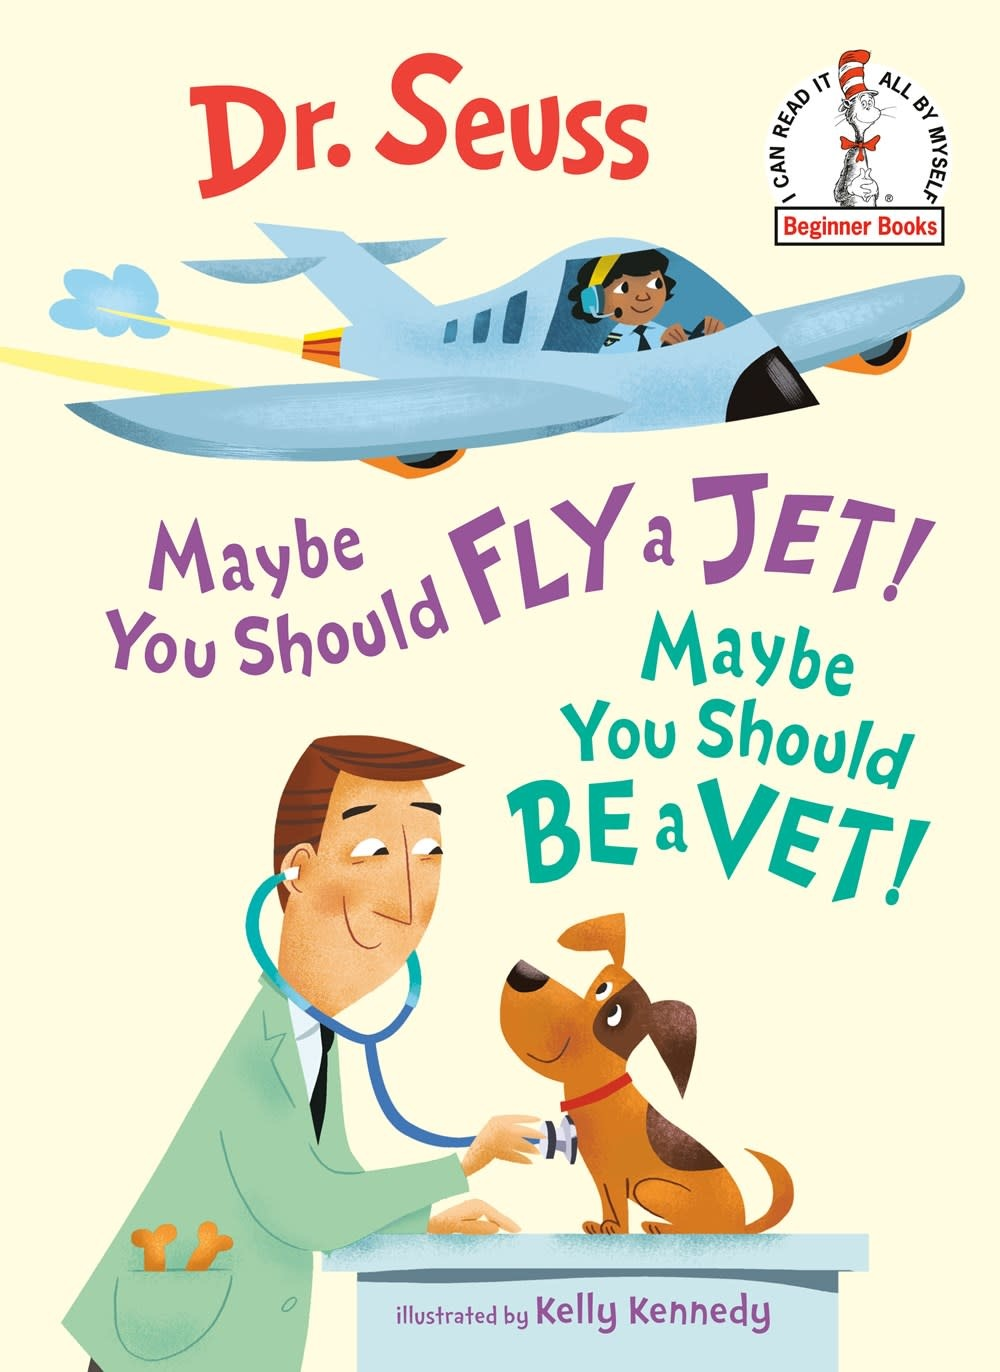 Random House Books for Young Readers Maybe You Should Fly a Jet! Maybe You Should Be a Vet!